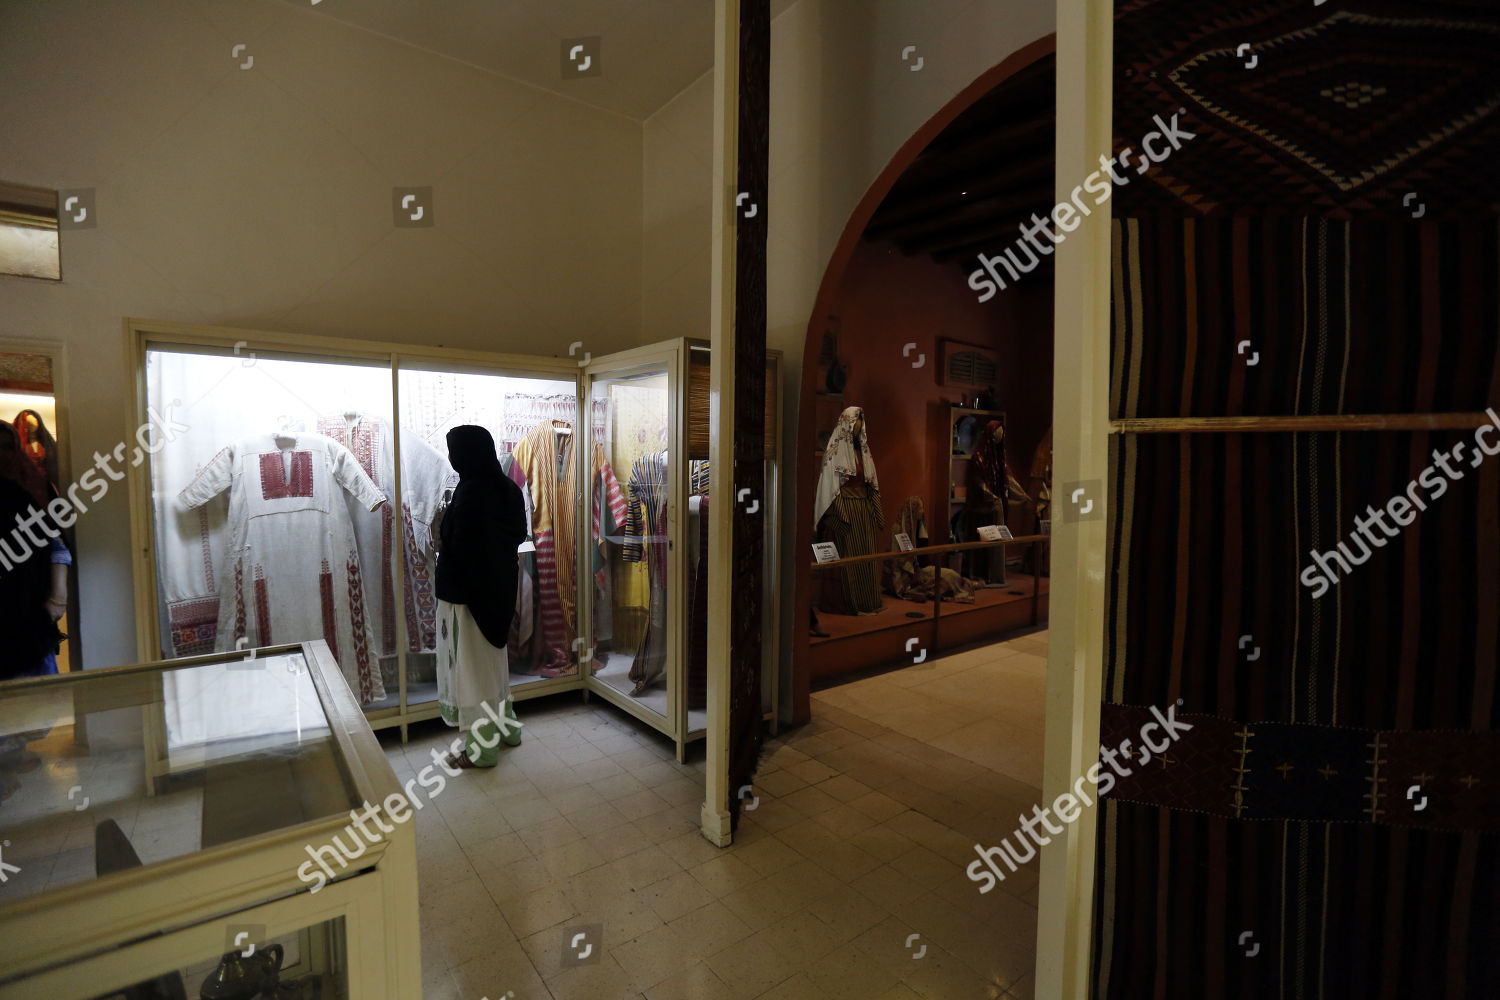 Attraction Pictures View Images Of Jordan Folklore Museum